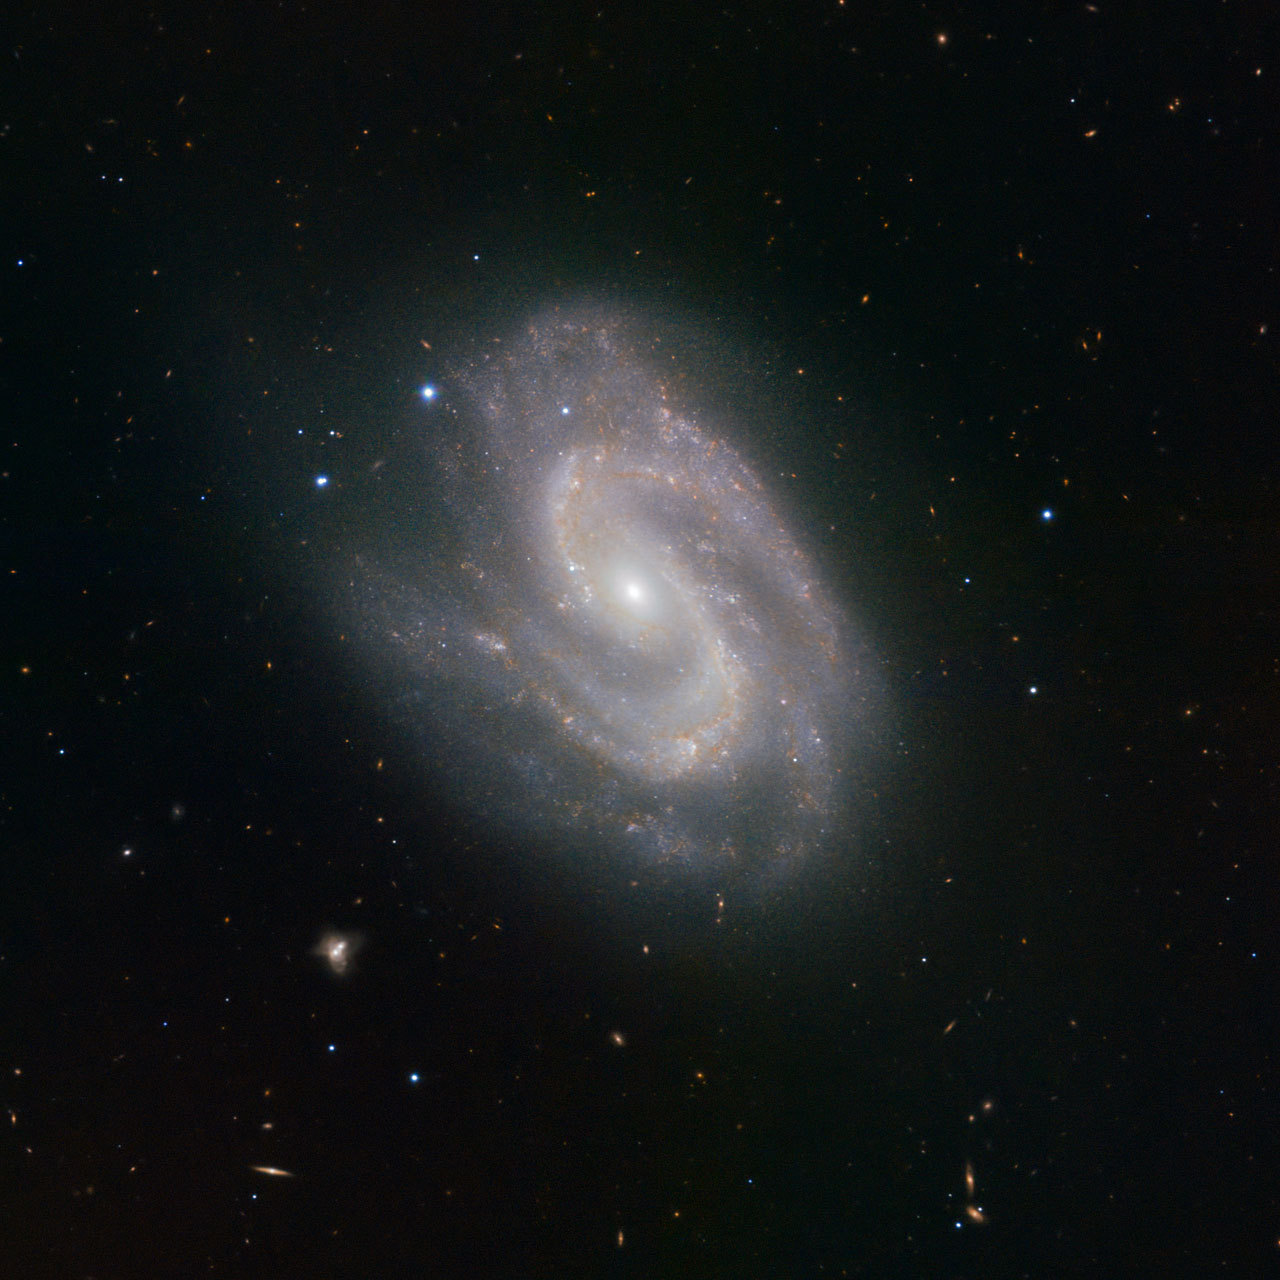 "ESO's HAWK-I Instrument Spies a Super Galaxy The HAWK-I instrument on ESO's Very Large Telescope (VLT) at the Paranal Observatory in Chile has been used to great effect in producing this distinctive image of the distant galaxy NGC 157. Boasting a central sweep of stars resembling a giant ""S"". HAWK-I detects infrared light, allowing us to peer through the gas and dust that normally obscures our view. This reveals an otherwise hidden view of the Universe, and gives astronomers the opportunity to study dense areas of star formation. Learning more about star formation is an important step towards expanding our understanding of our own origins. The same processes that are coalescing material in NGC 157 and creating stars there took place around 4.5 billion years ago in the Milky Way to form our own star, the Sun. NGC 157 is faint at about magnitude 11, but can be tracked down by dedicated amateur astronomers. It is located within the constellation of Cetus."